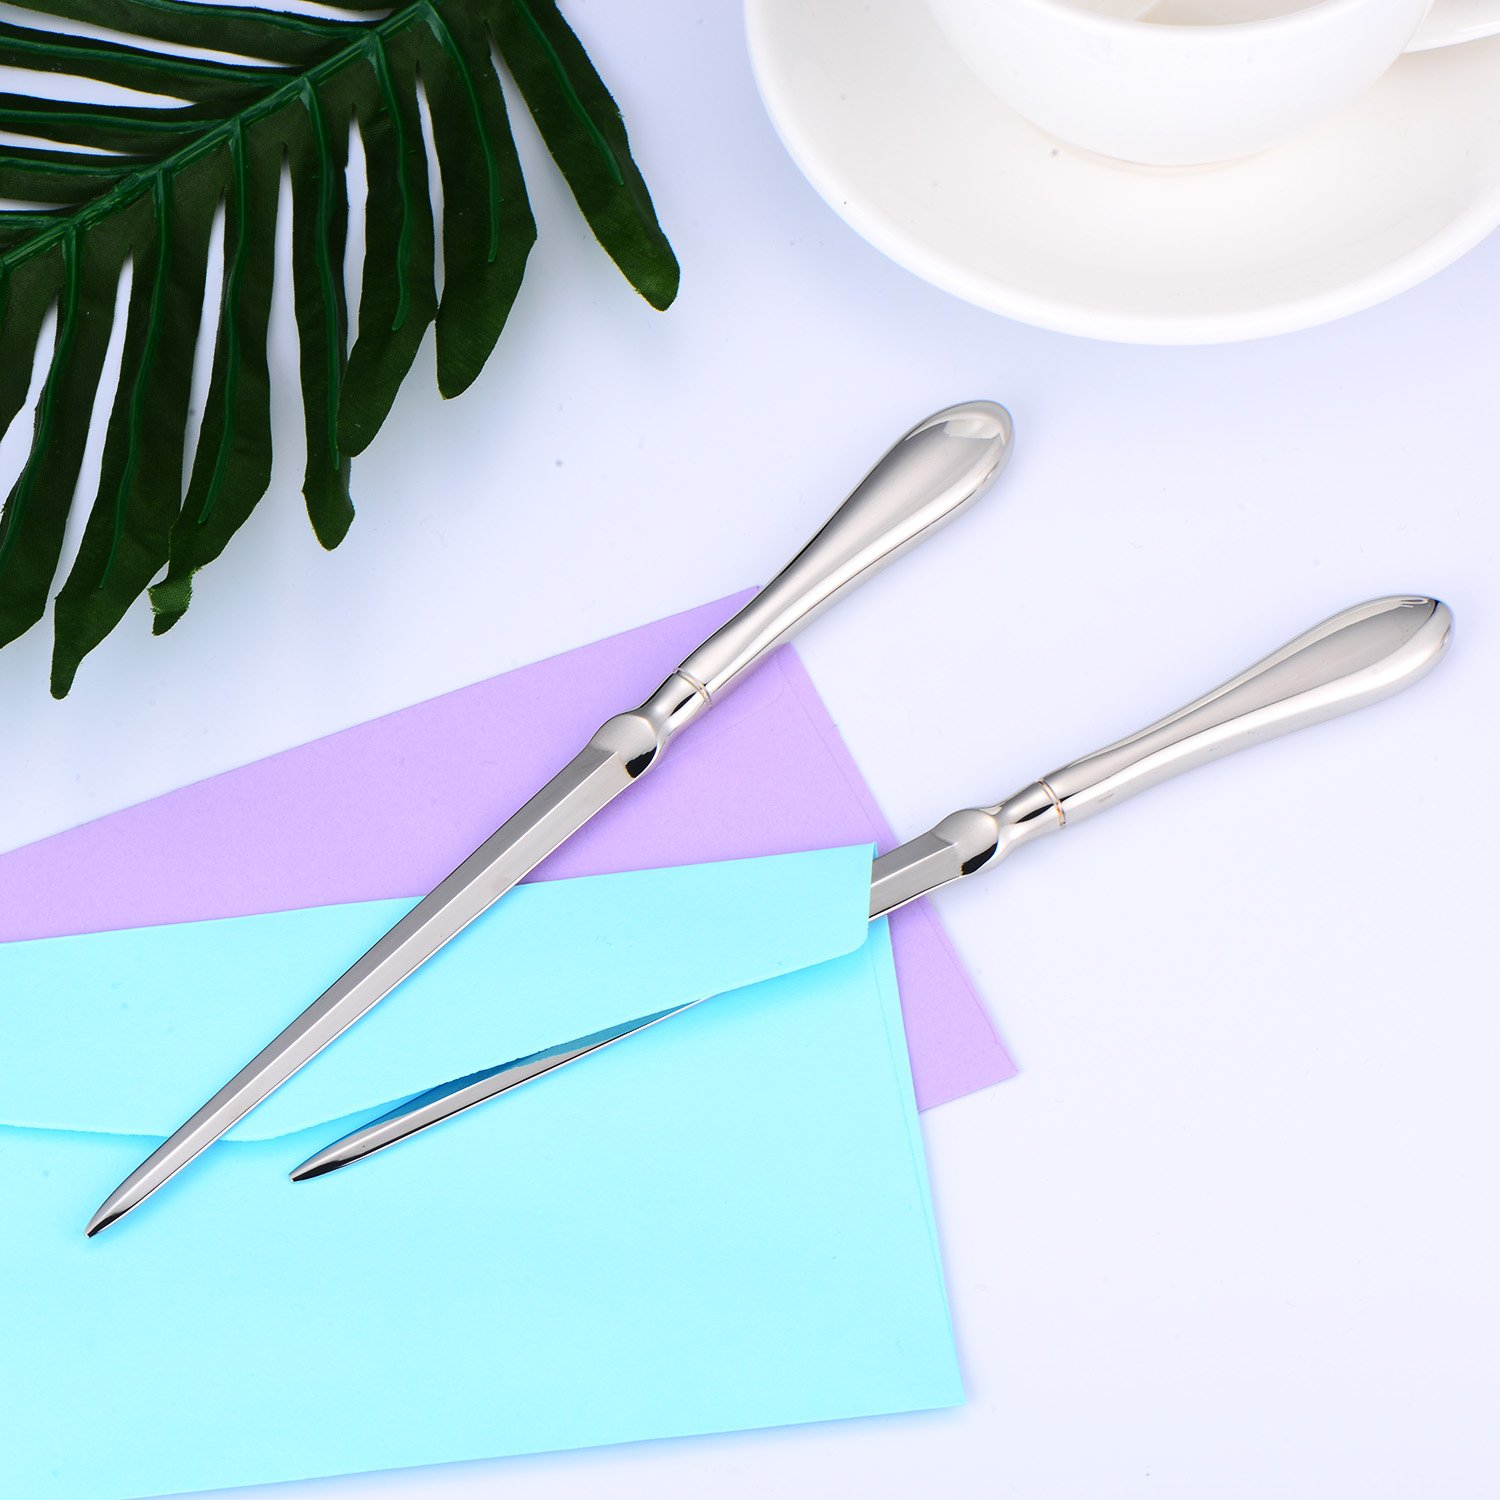 TecUnite 2 Pack Letter Opener Envelope Opener Knife Metal Letter Opening Knife, 9 Inches (Silver Color) by TecUnite (Image #7)